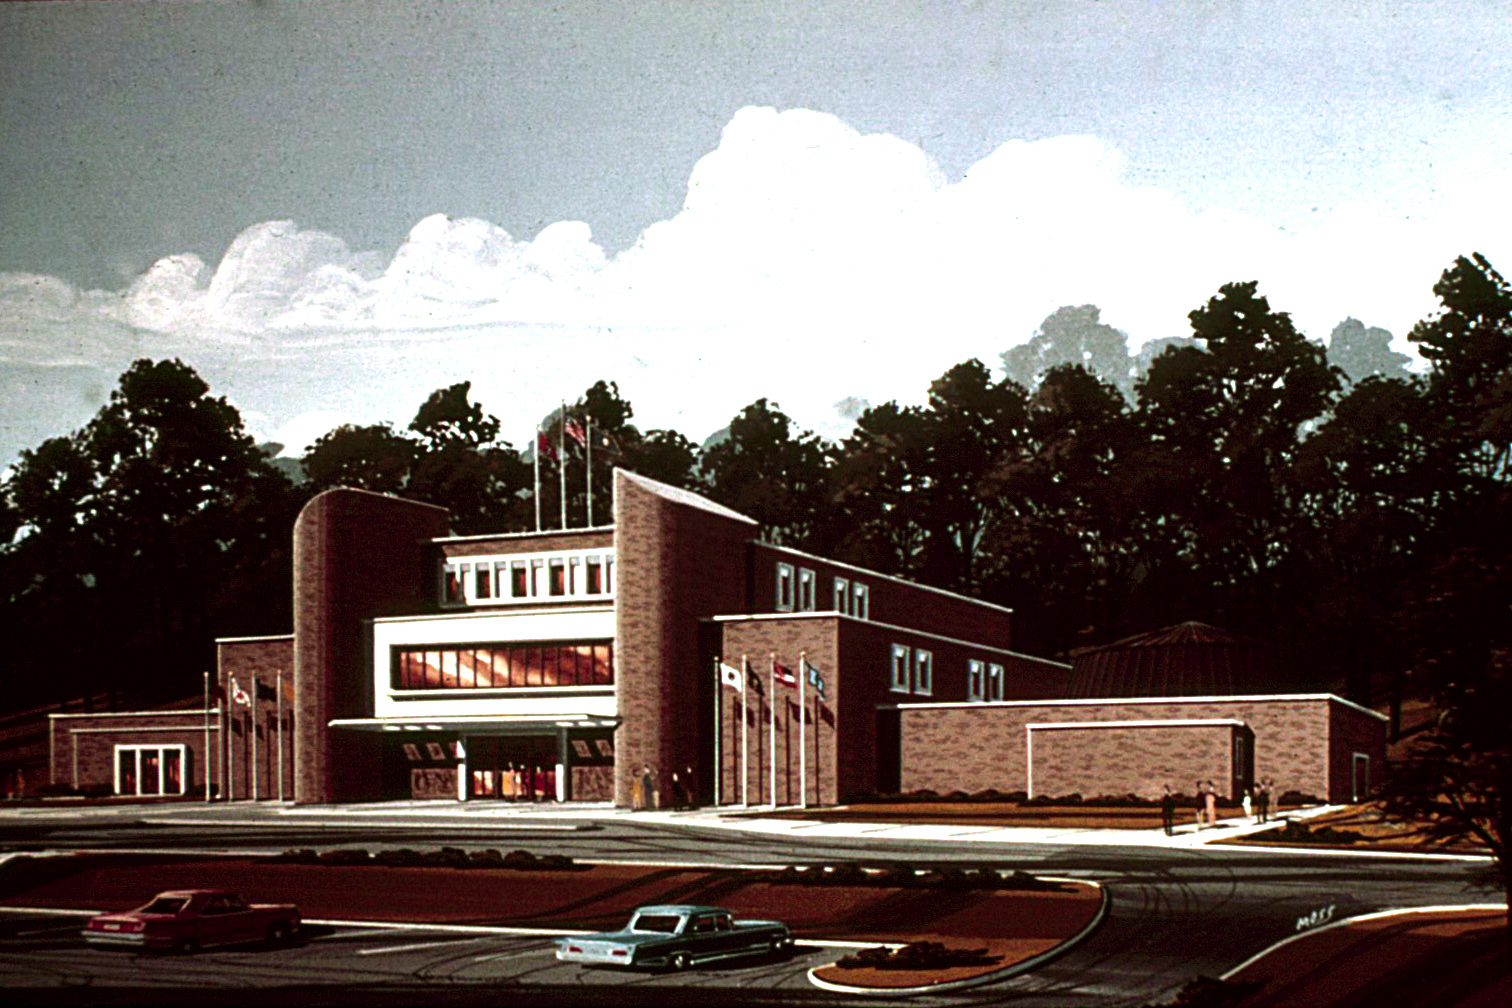 The Cumberland Museum and Science Center opens in Fort Negley Park in 1974. Credit: Adventure Science Center